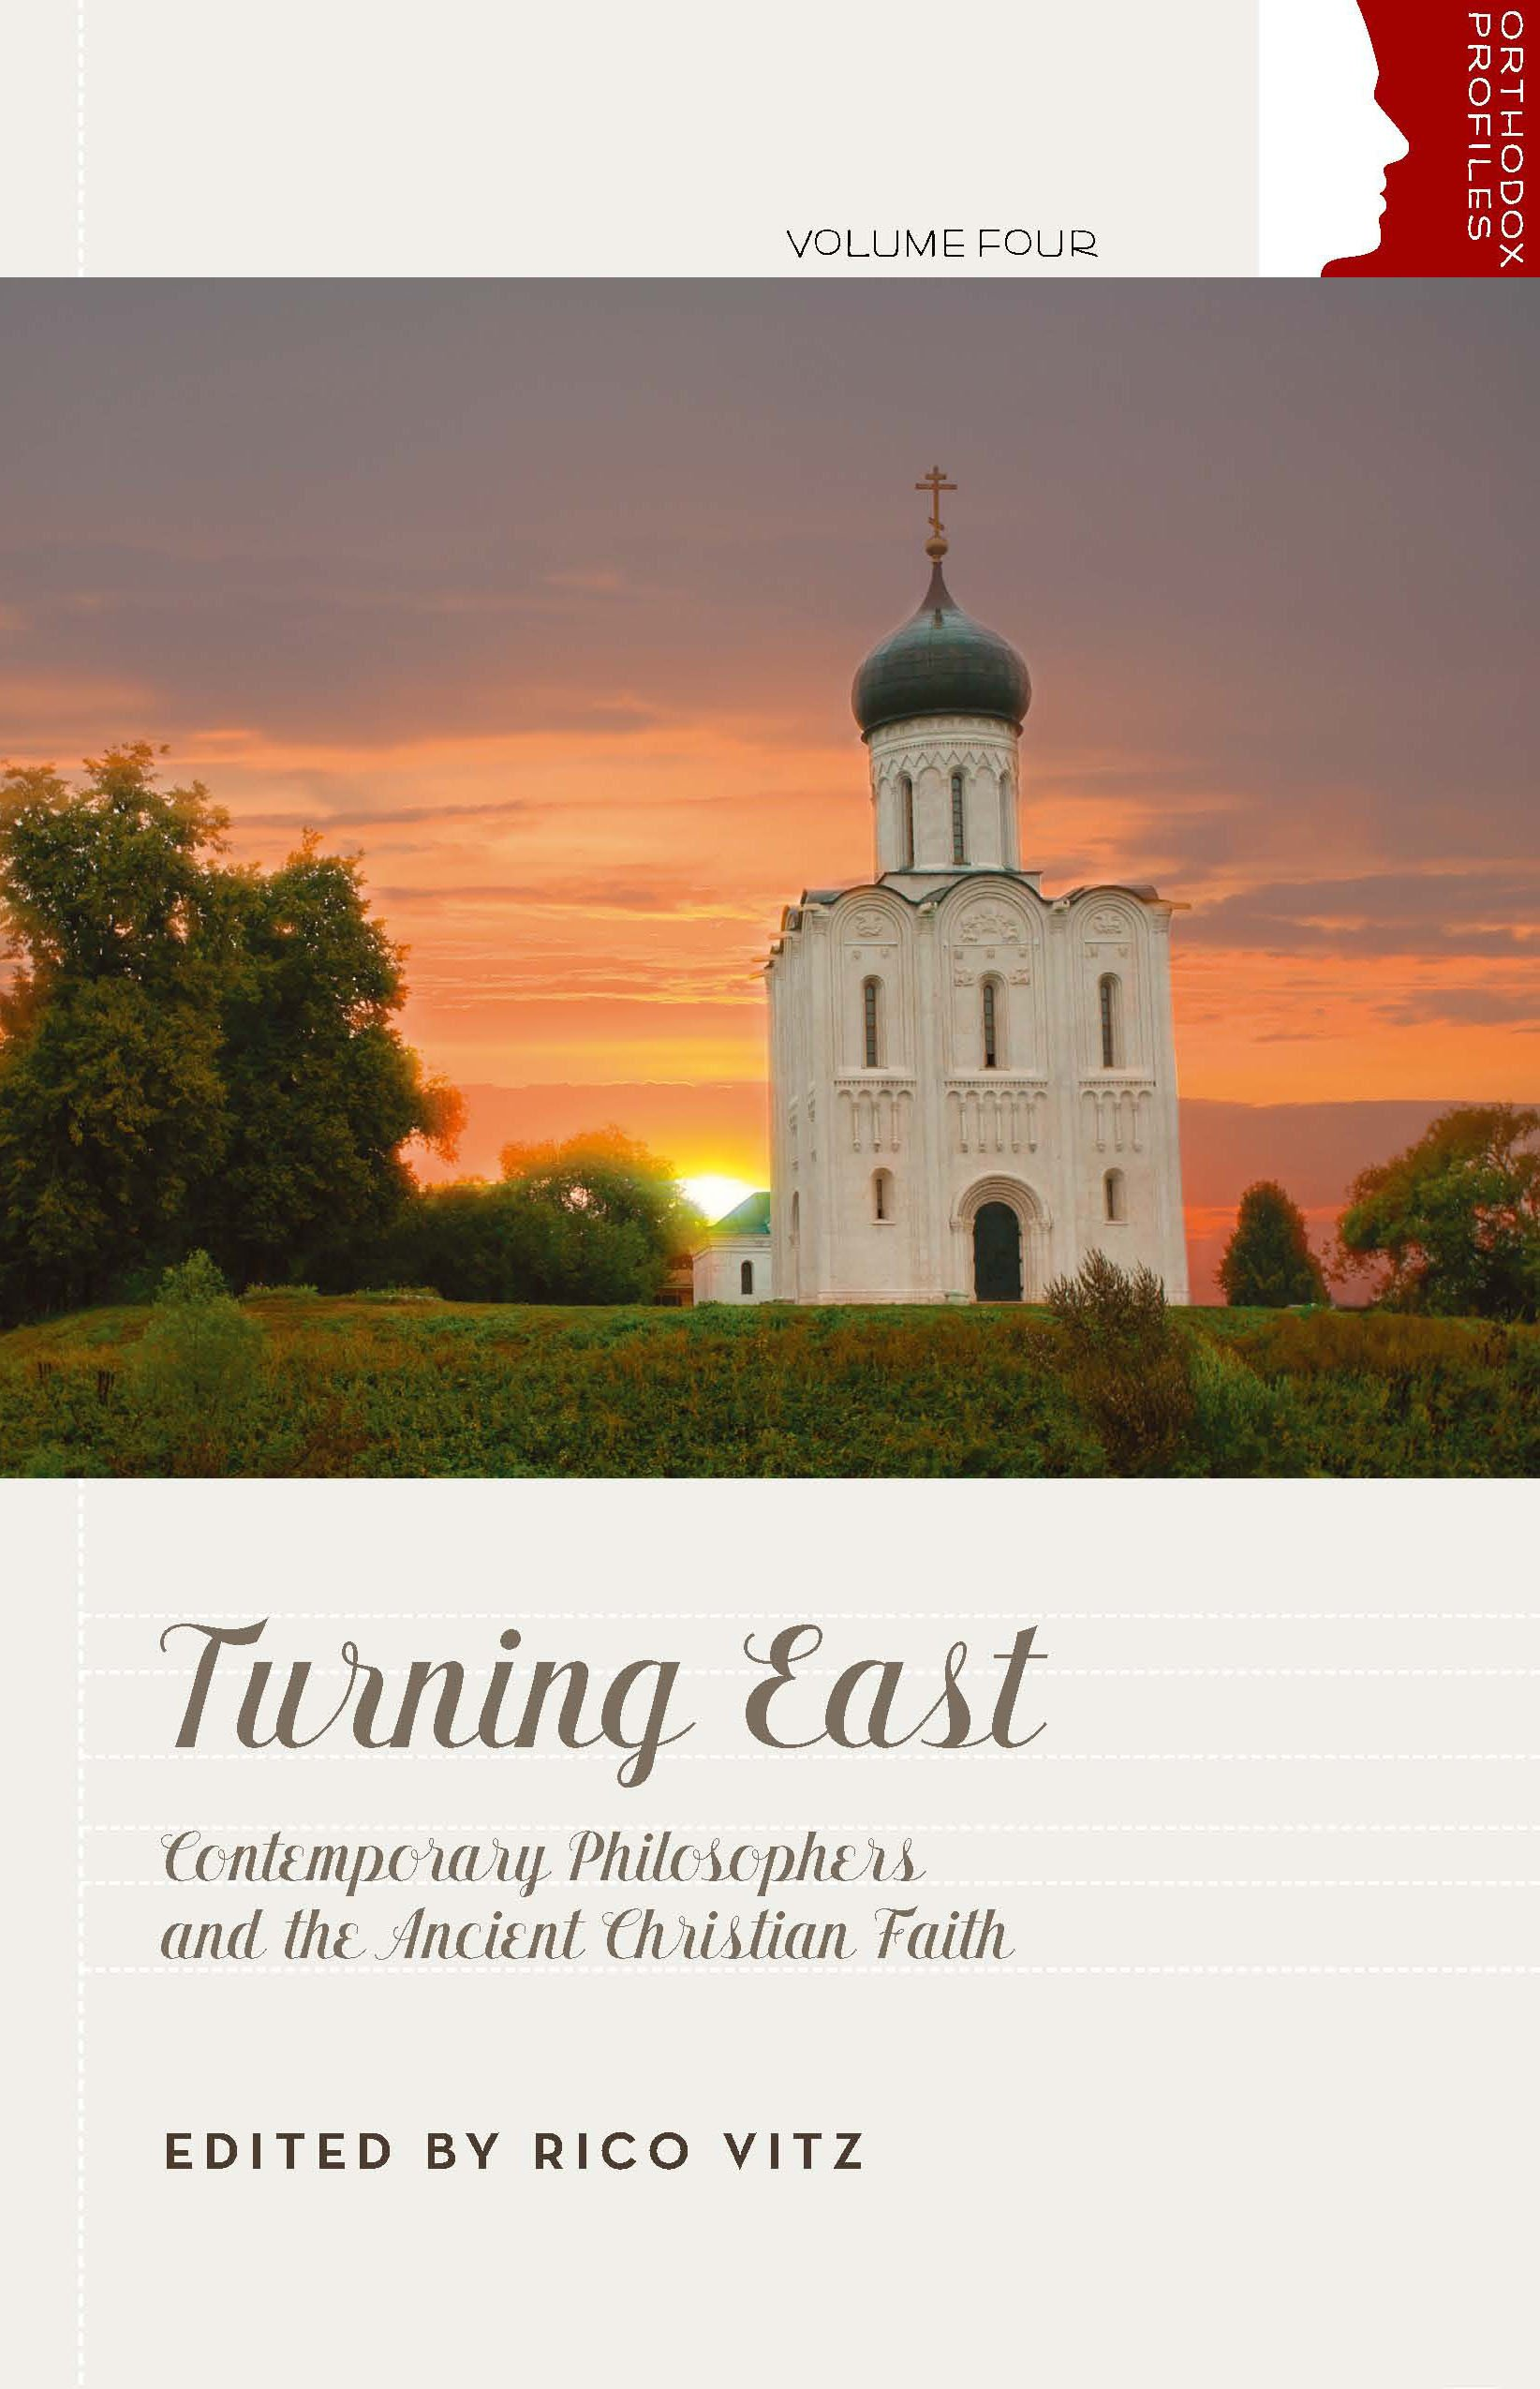 Turning East: Contemporary Philosophers And The Ancient Christian Faith  (orthodox Christan Profiles): Rico Vitz, Chad Hatfield: 9780881414158:  Amazon: